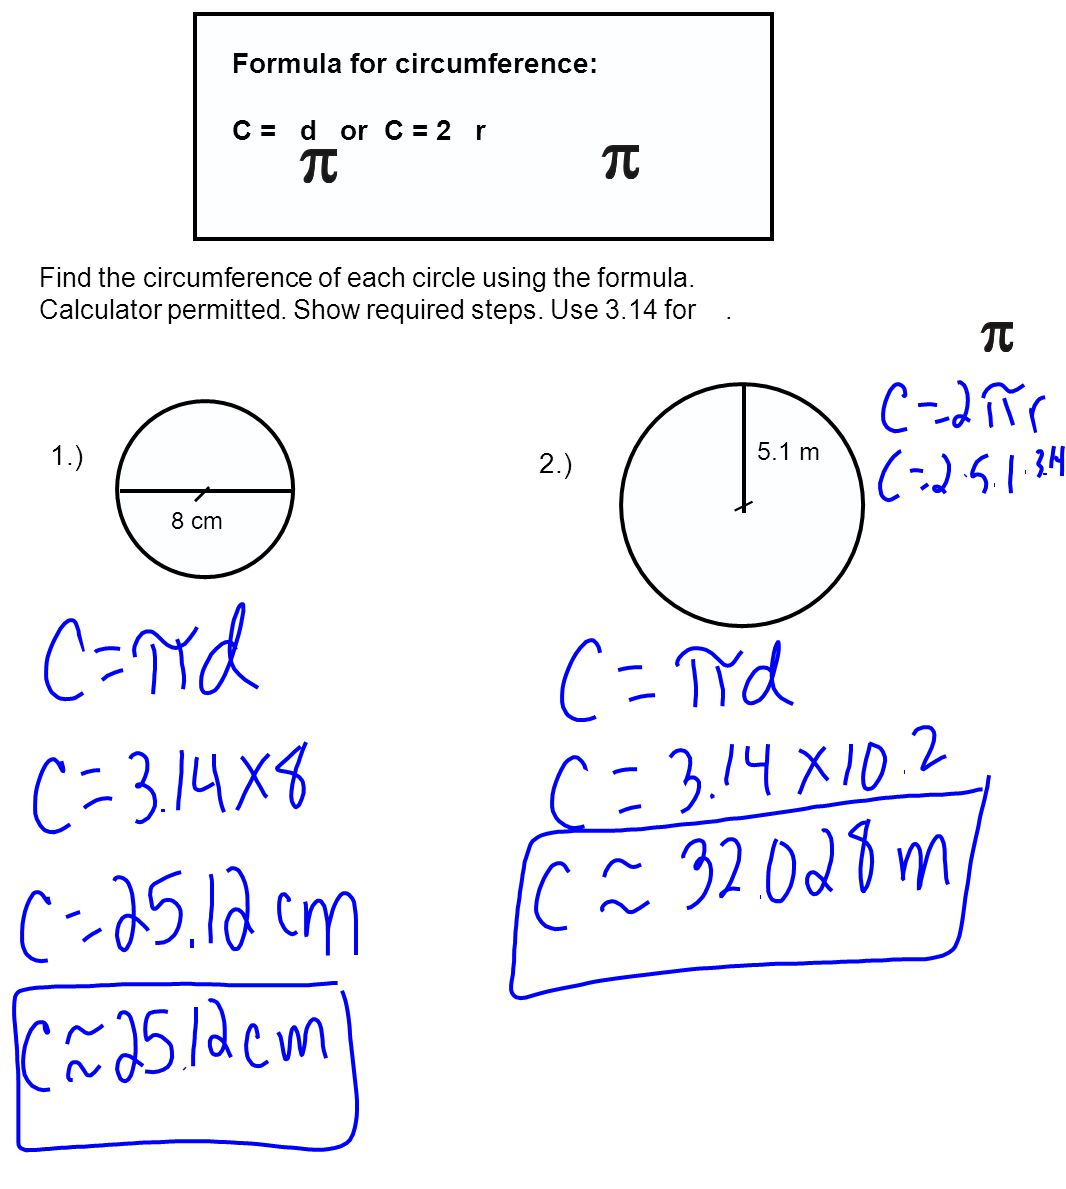 Homework help sites for circumference